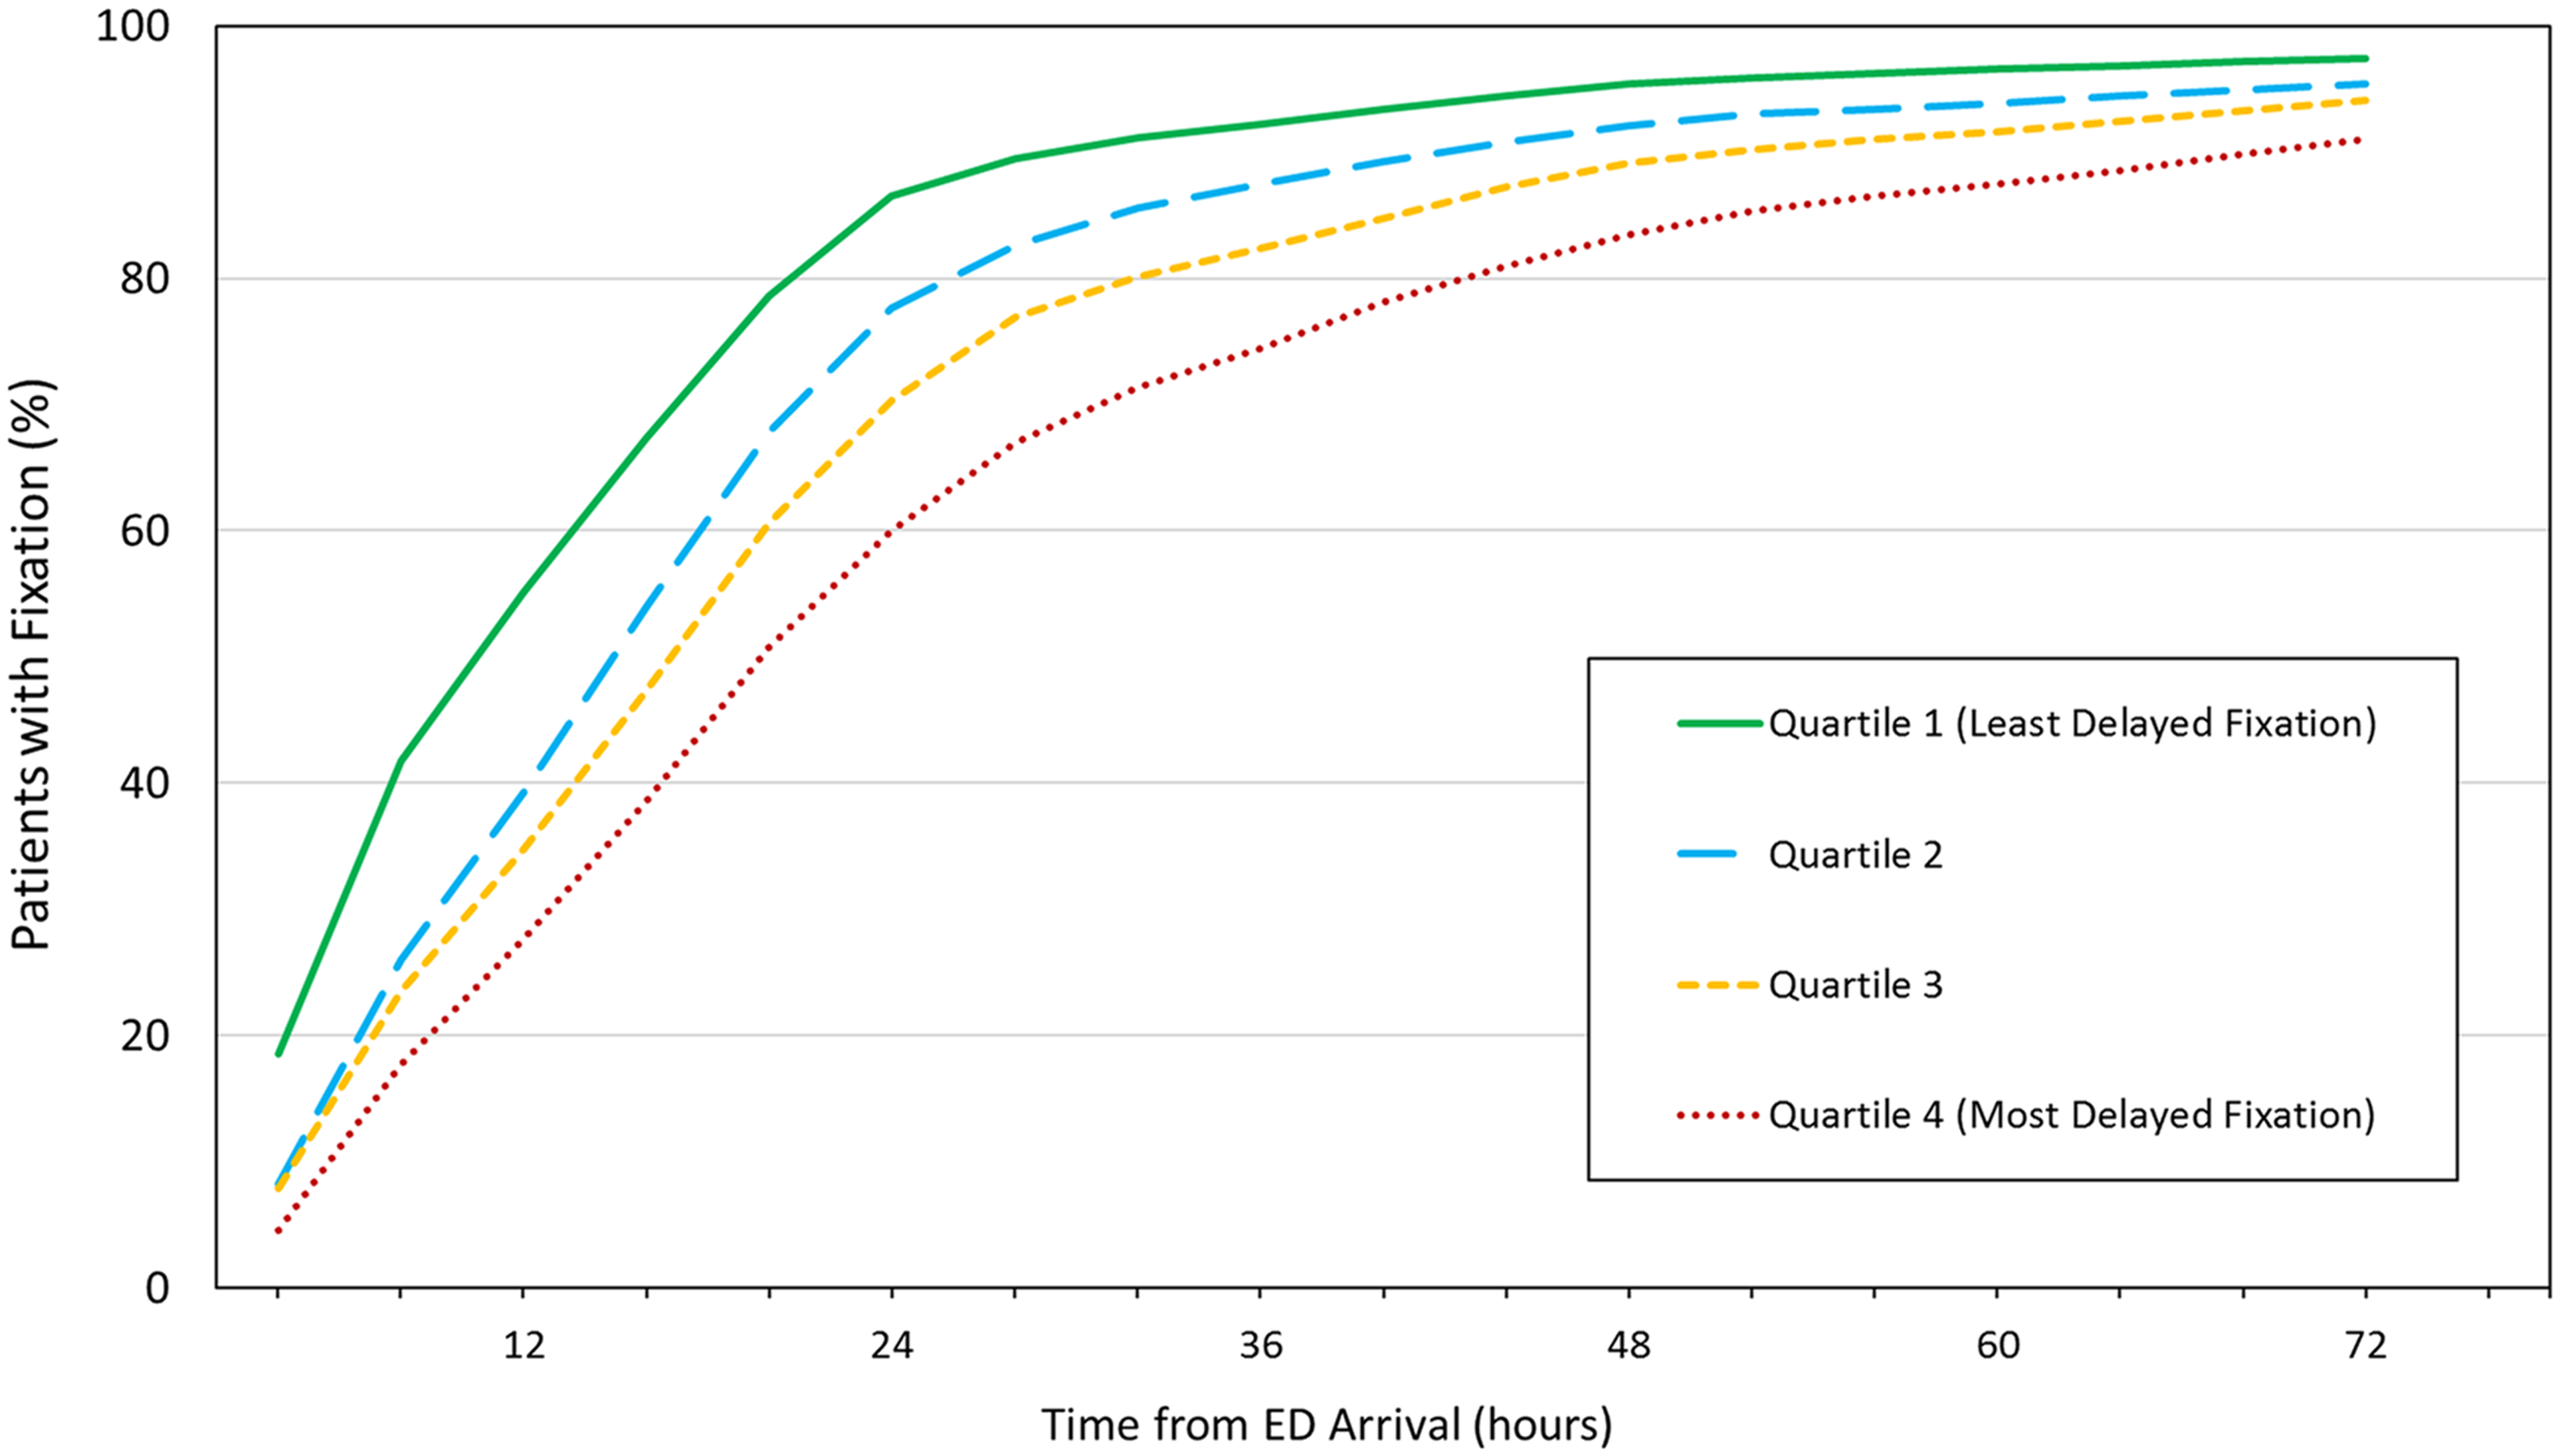 Cumulative percentage of patients receiving definitive fixation as a function of time from emergency department (ED) arrival.